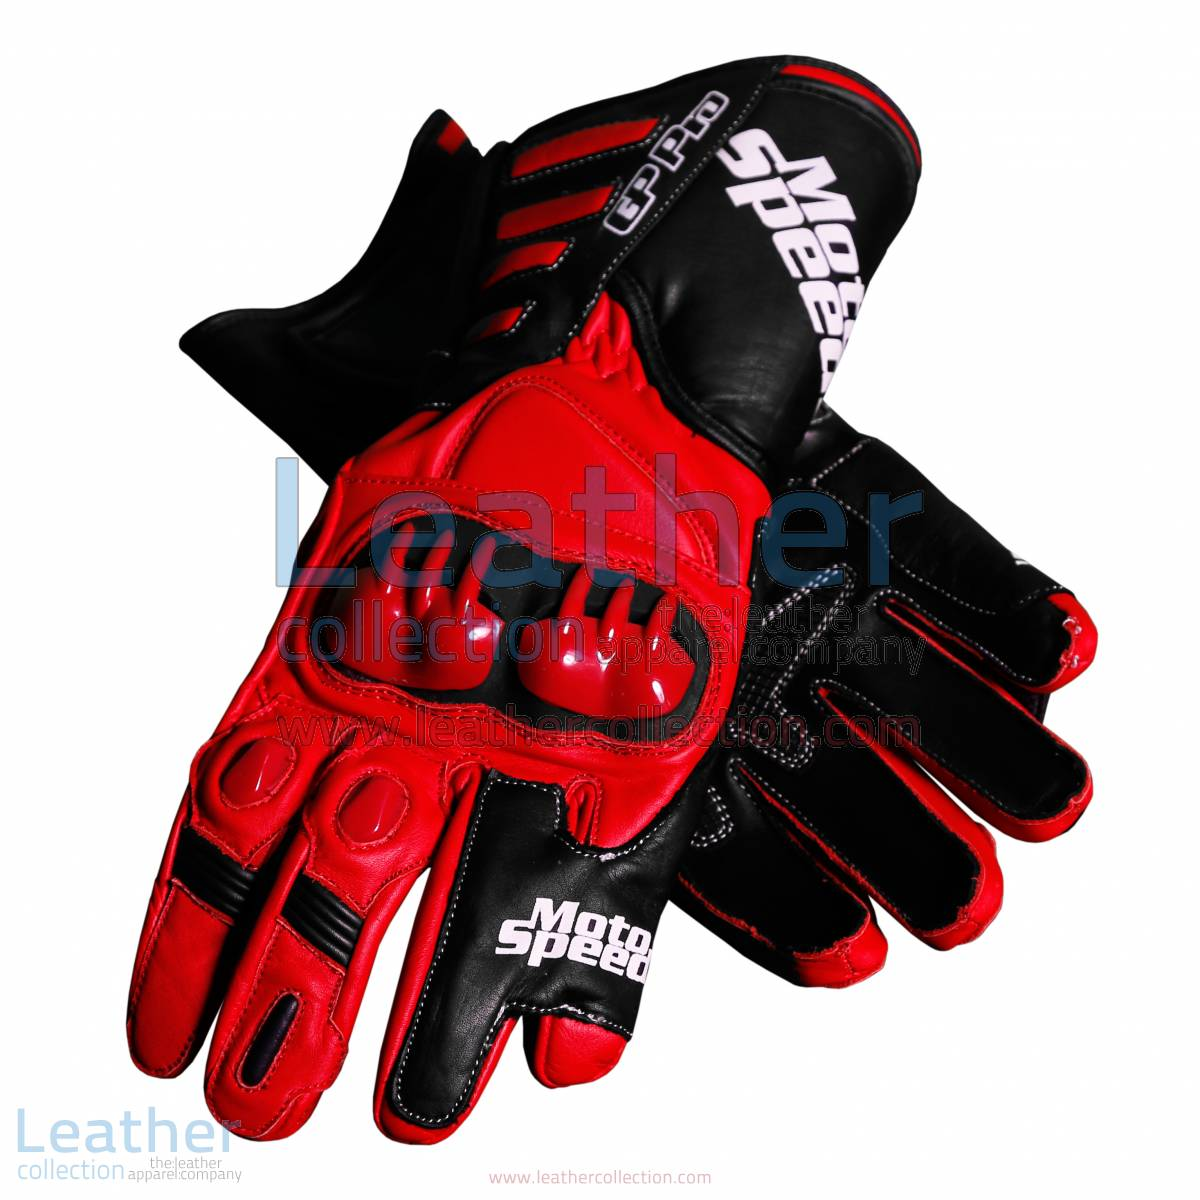 Marquez 2015 - 2016 Motorbike Racing Gloves | Marc Marquez 2015 - 2016 motorcycle Racing Gloves